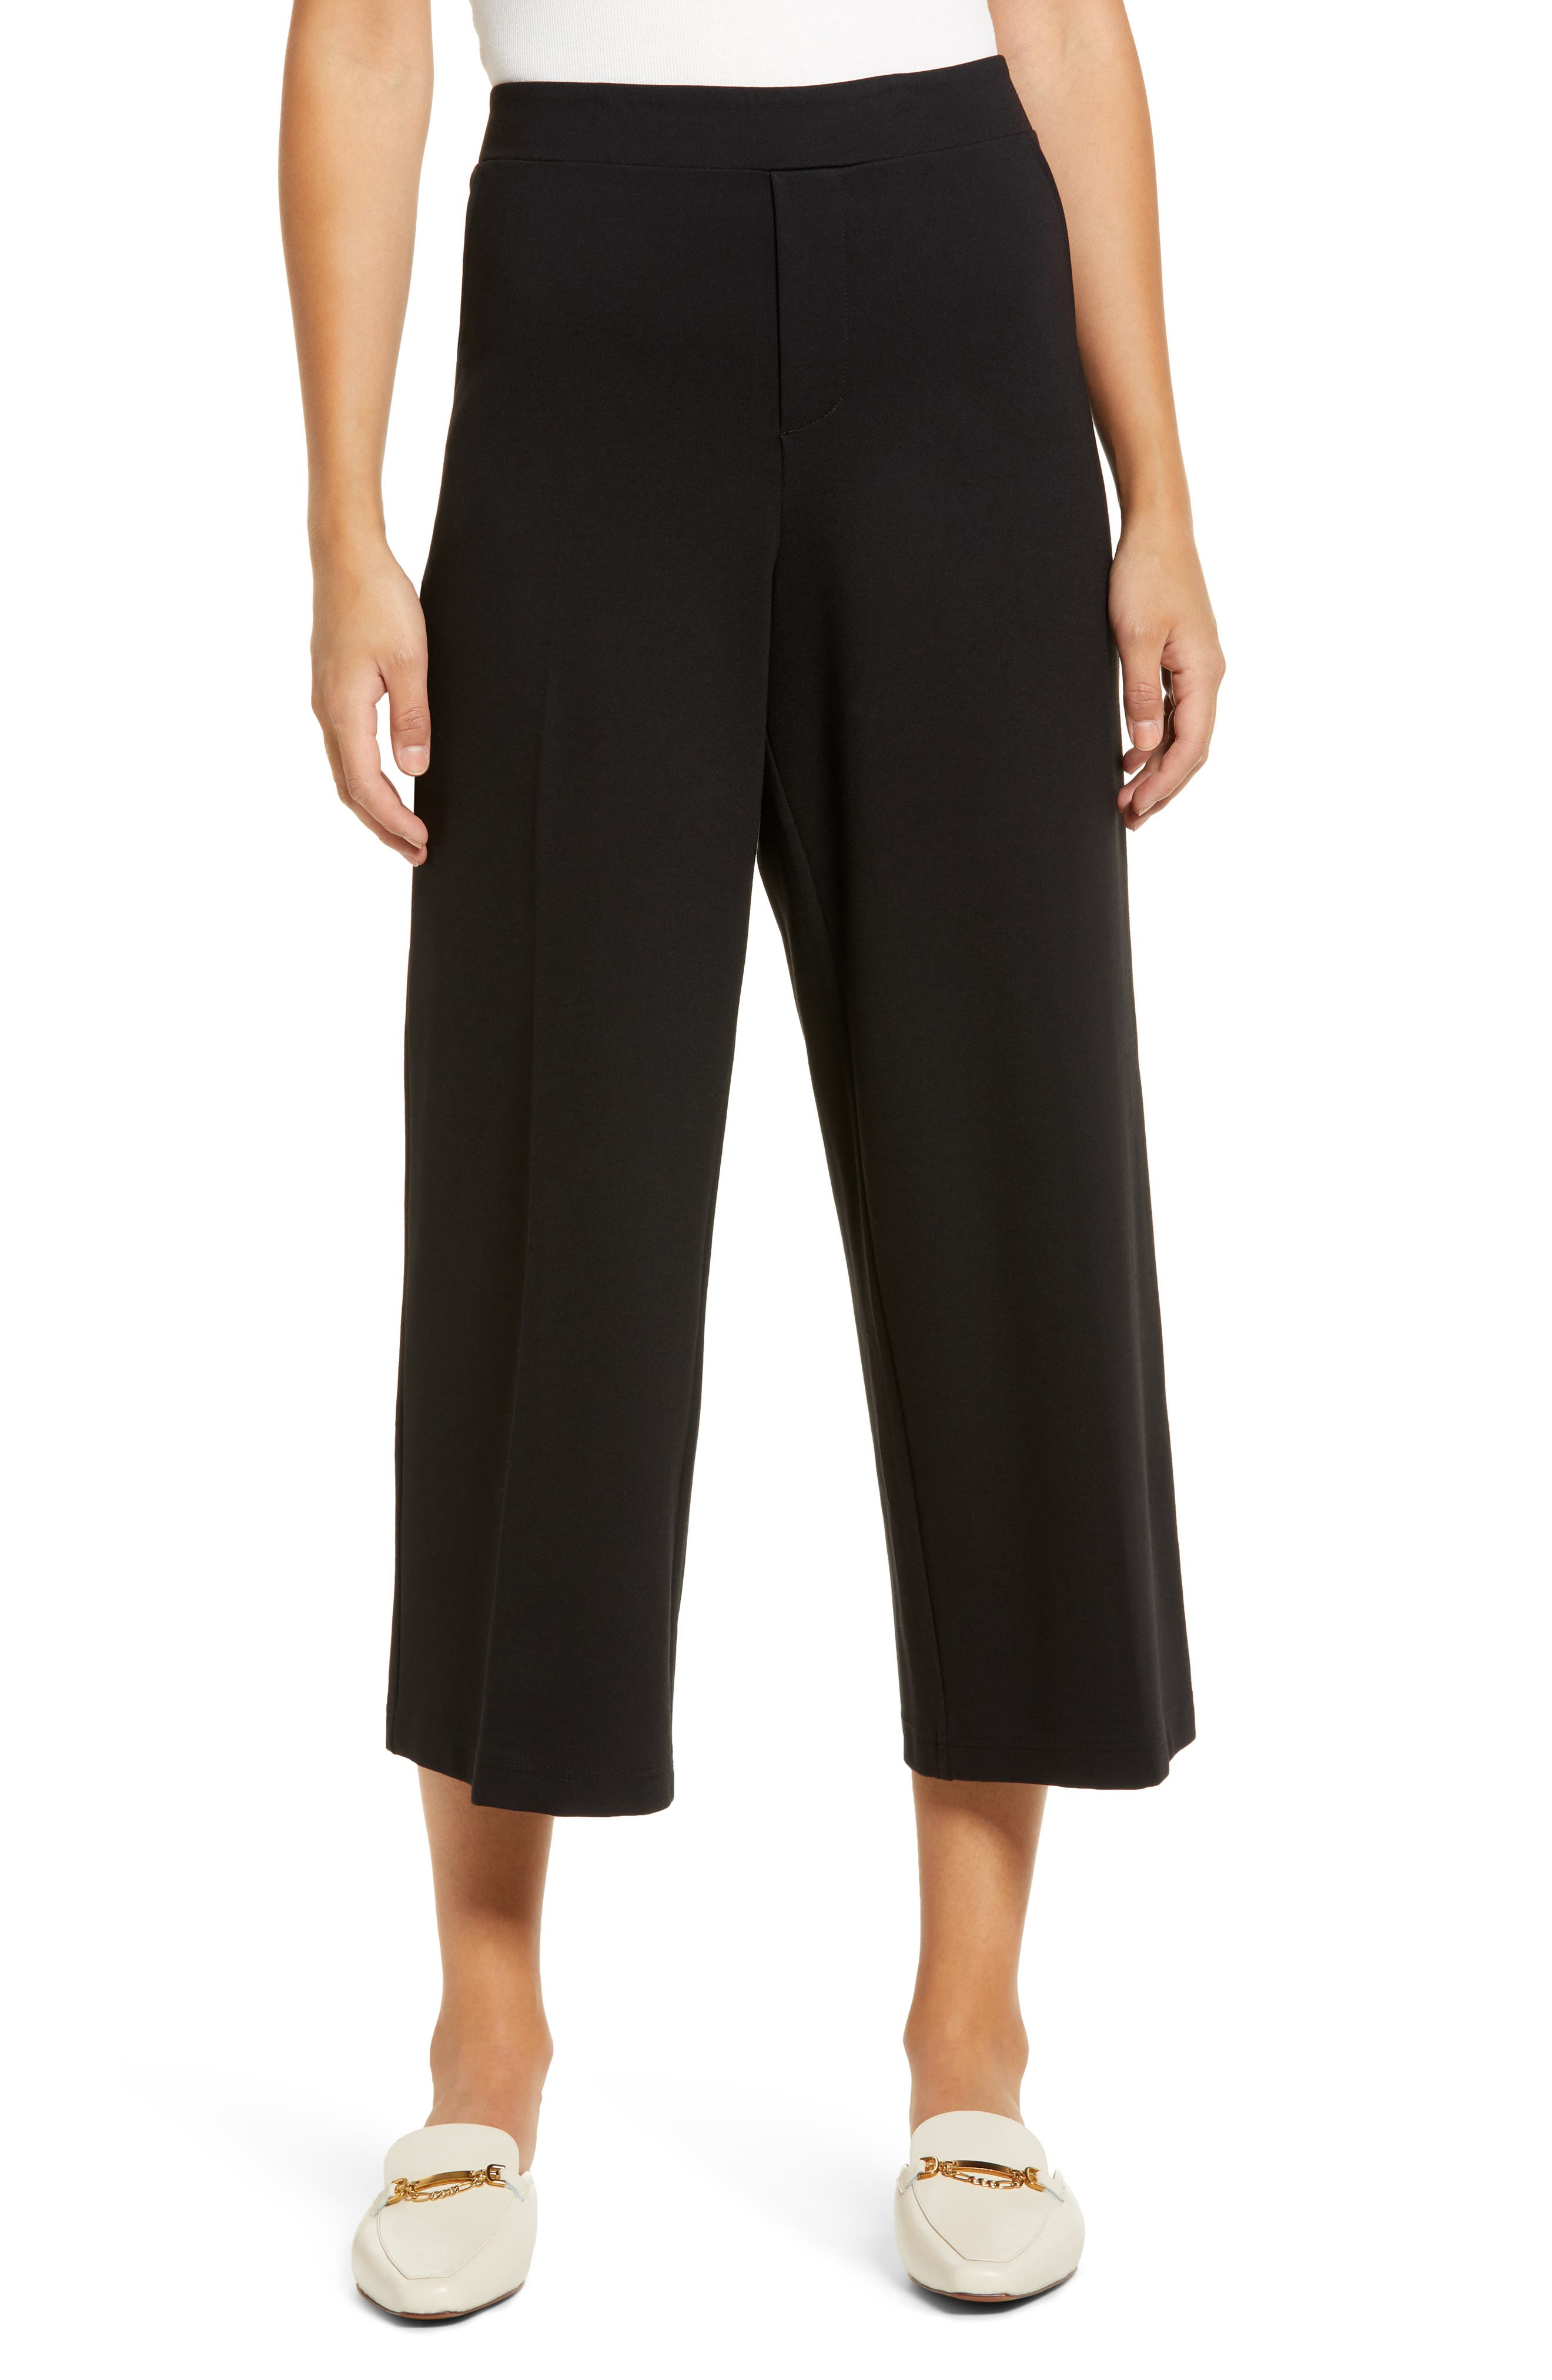 Staple pants are easy favorites thanks to a flattering wide-leg silhouette and an elastic waistband that offers all-day comfort. Style Name: Wit & Wisdom High Waist Crop Wide Leg Pants (Nordstrom Exclusive). Style Number: 6053270. Available in stores.